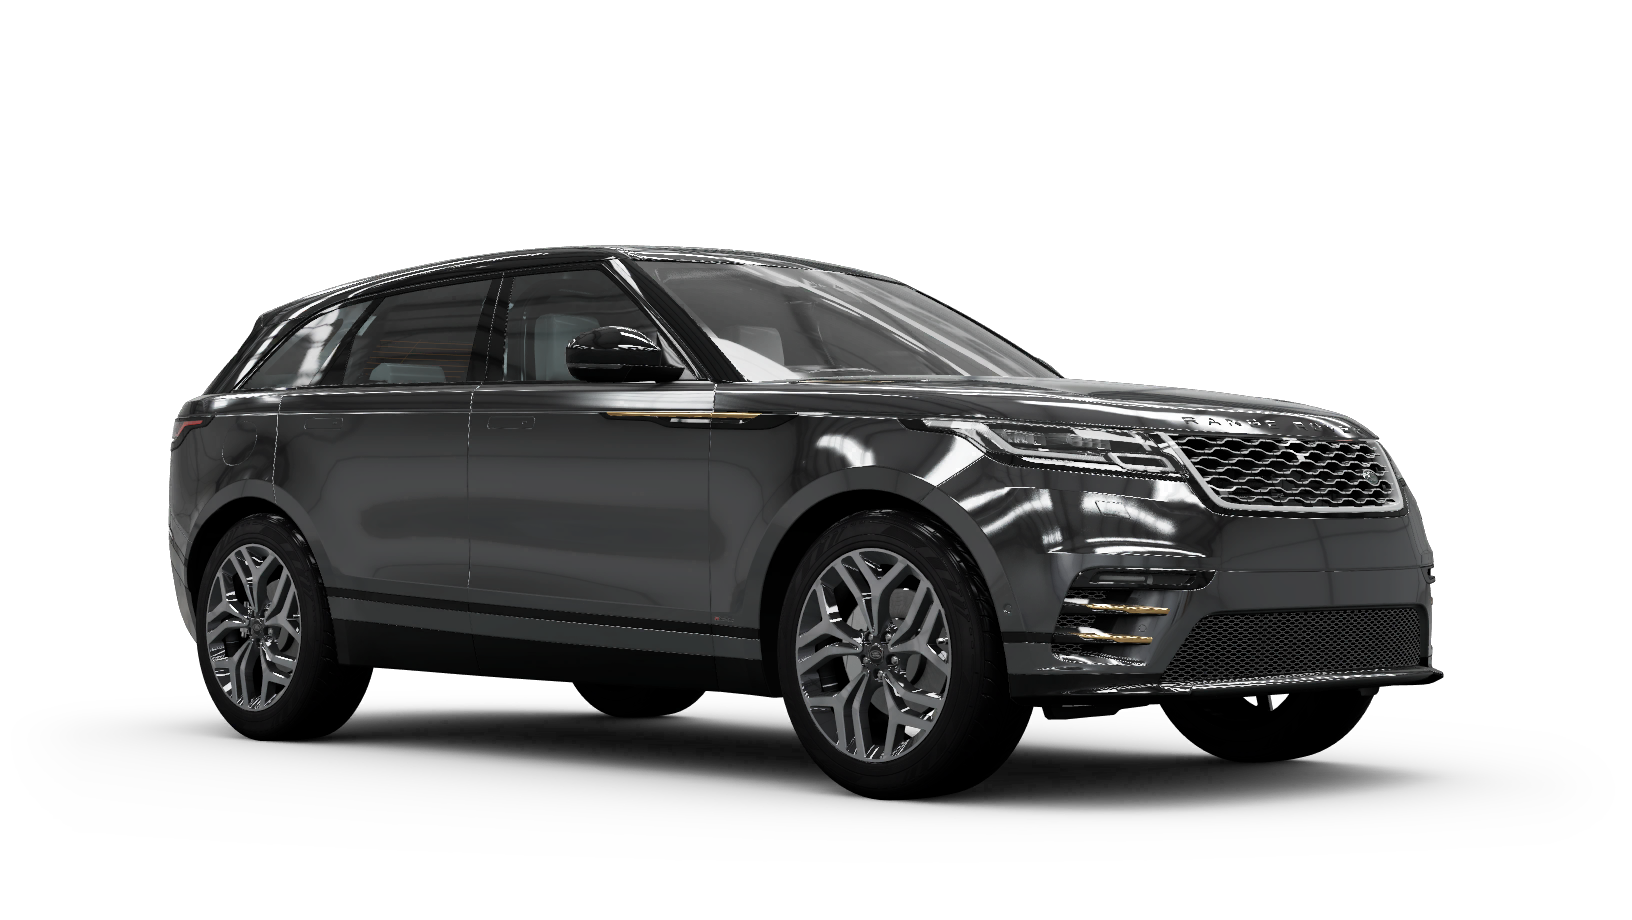 Forza-Horizon-4-Land-Rover-Range-Rover-Velar-First-Edition